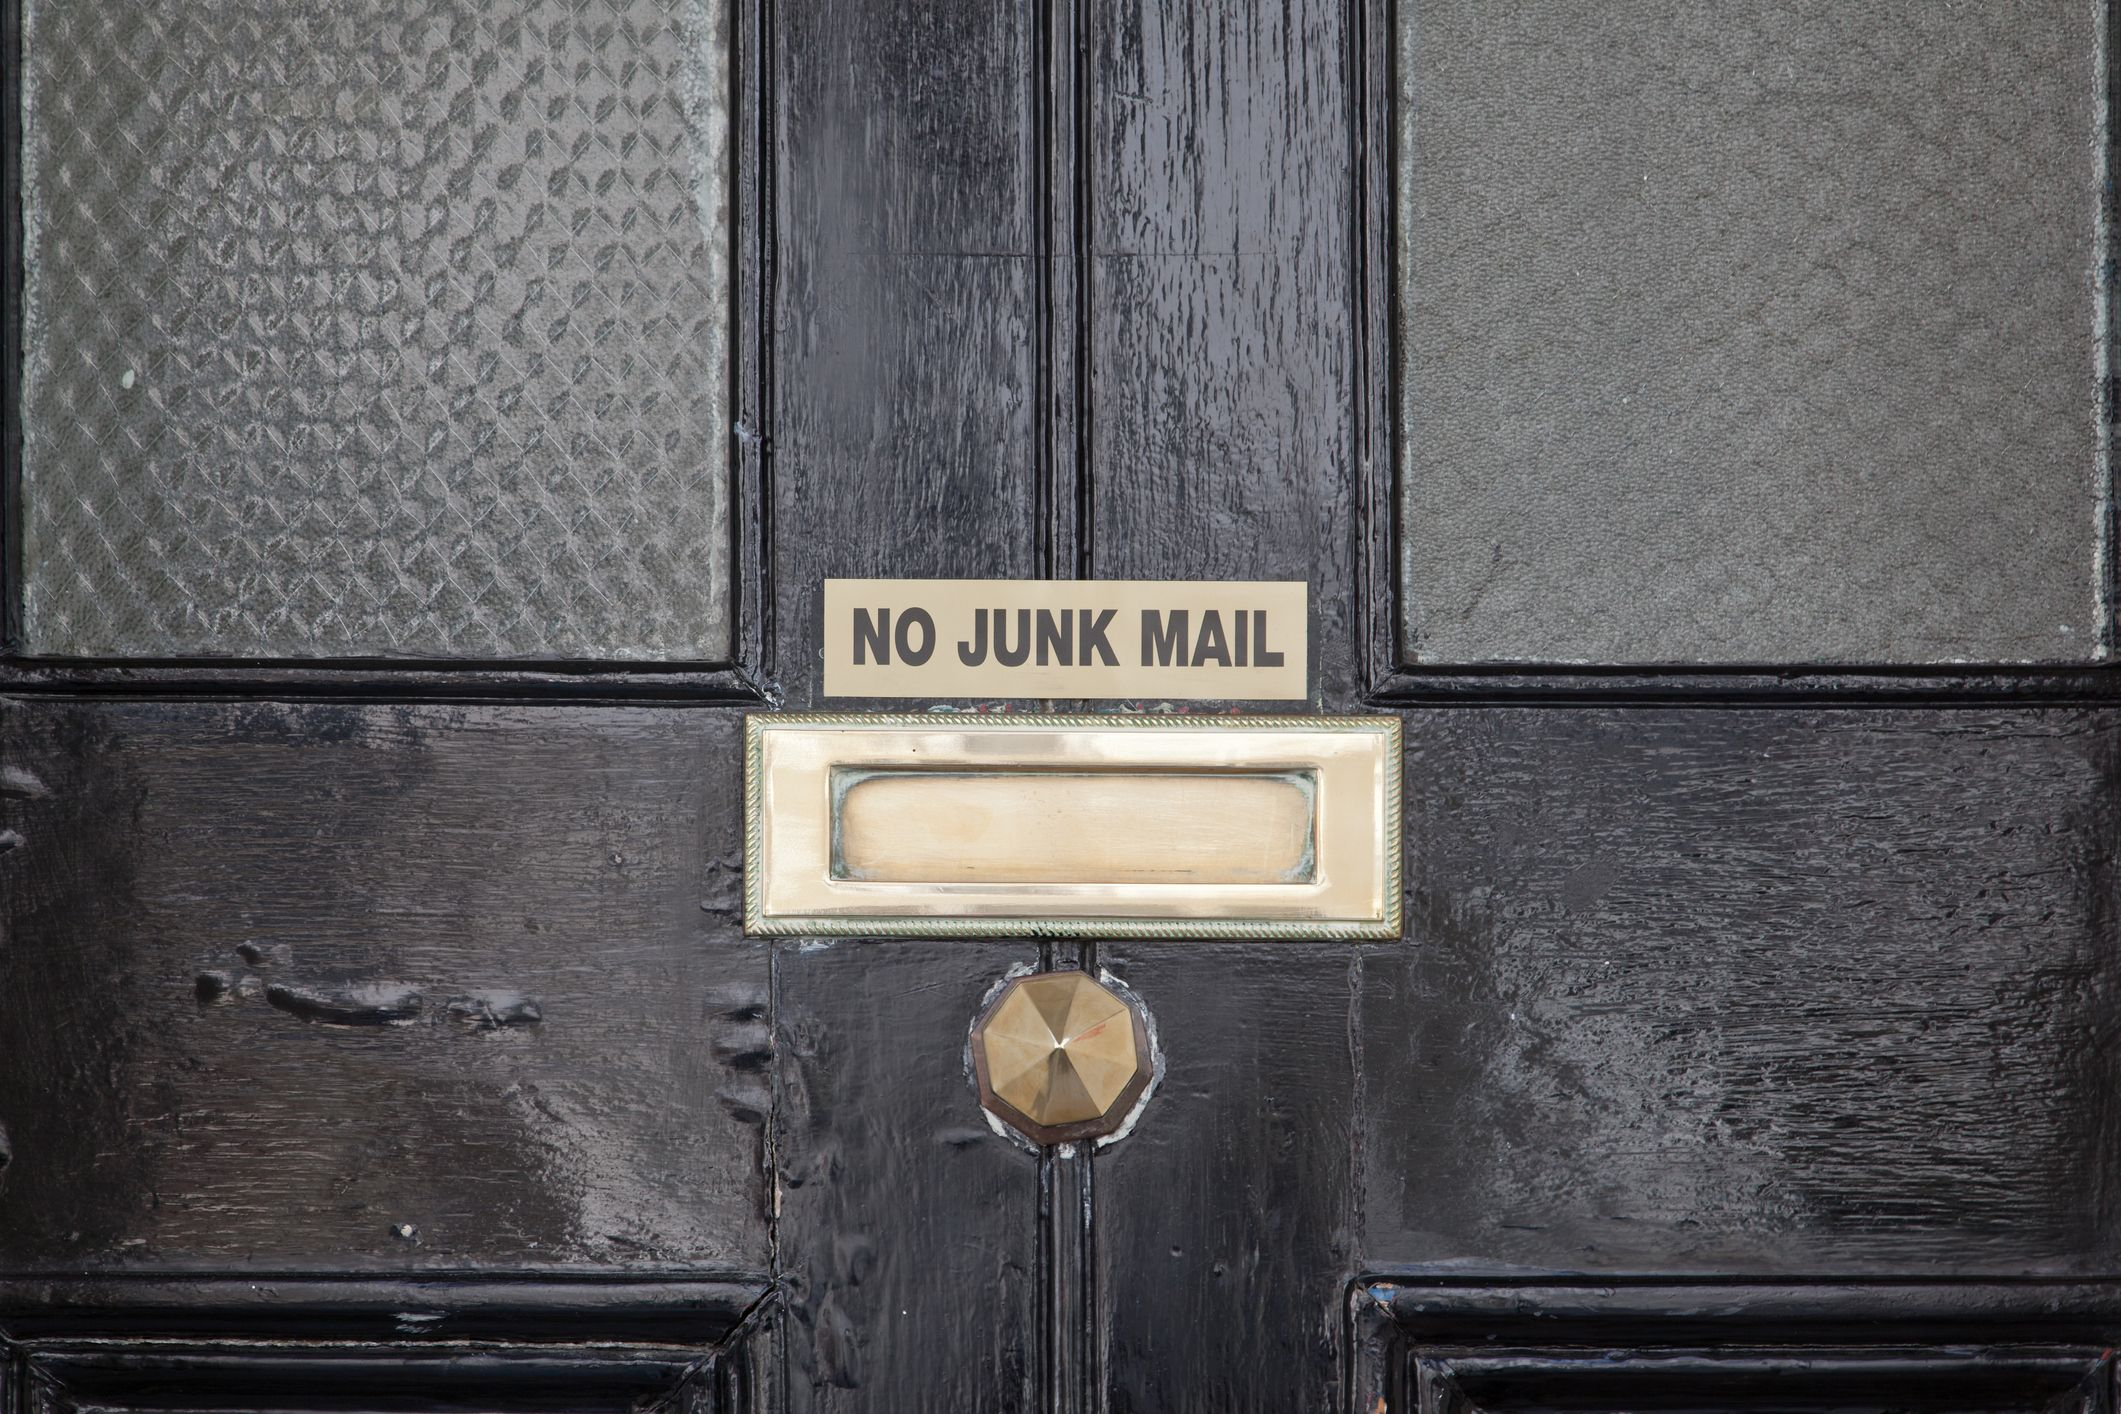 Junk mail is not their problem.